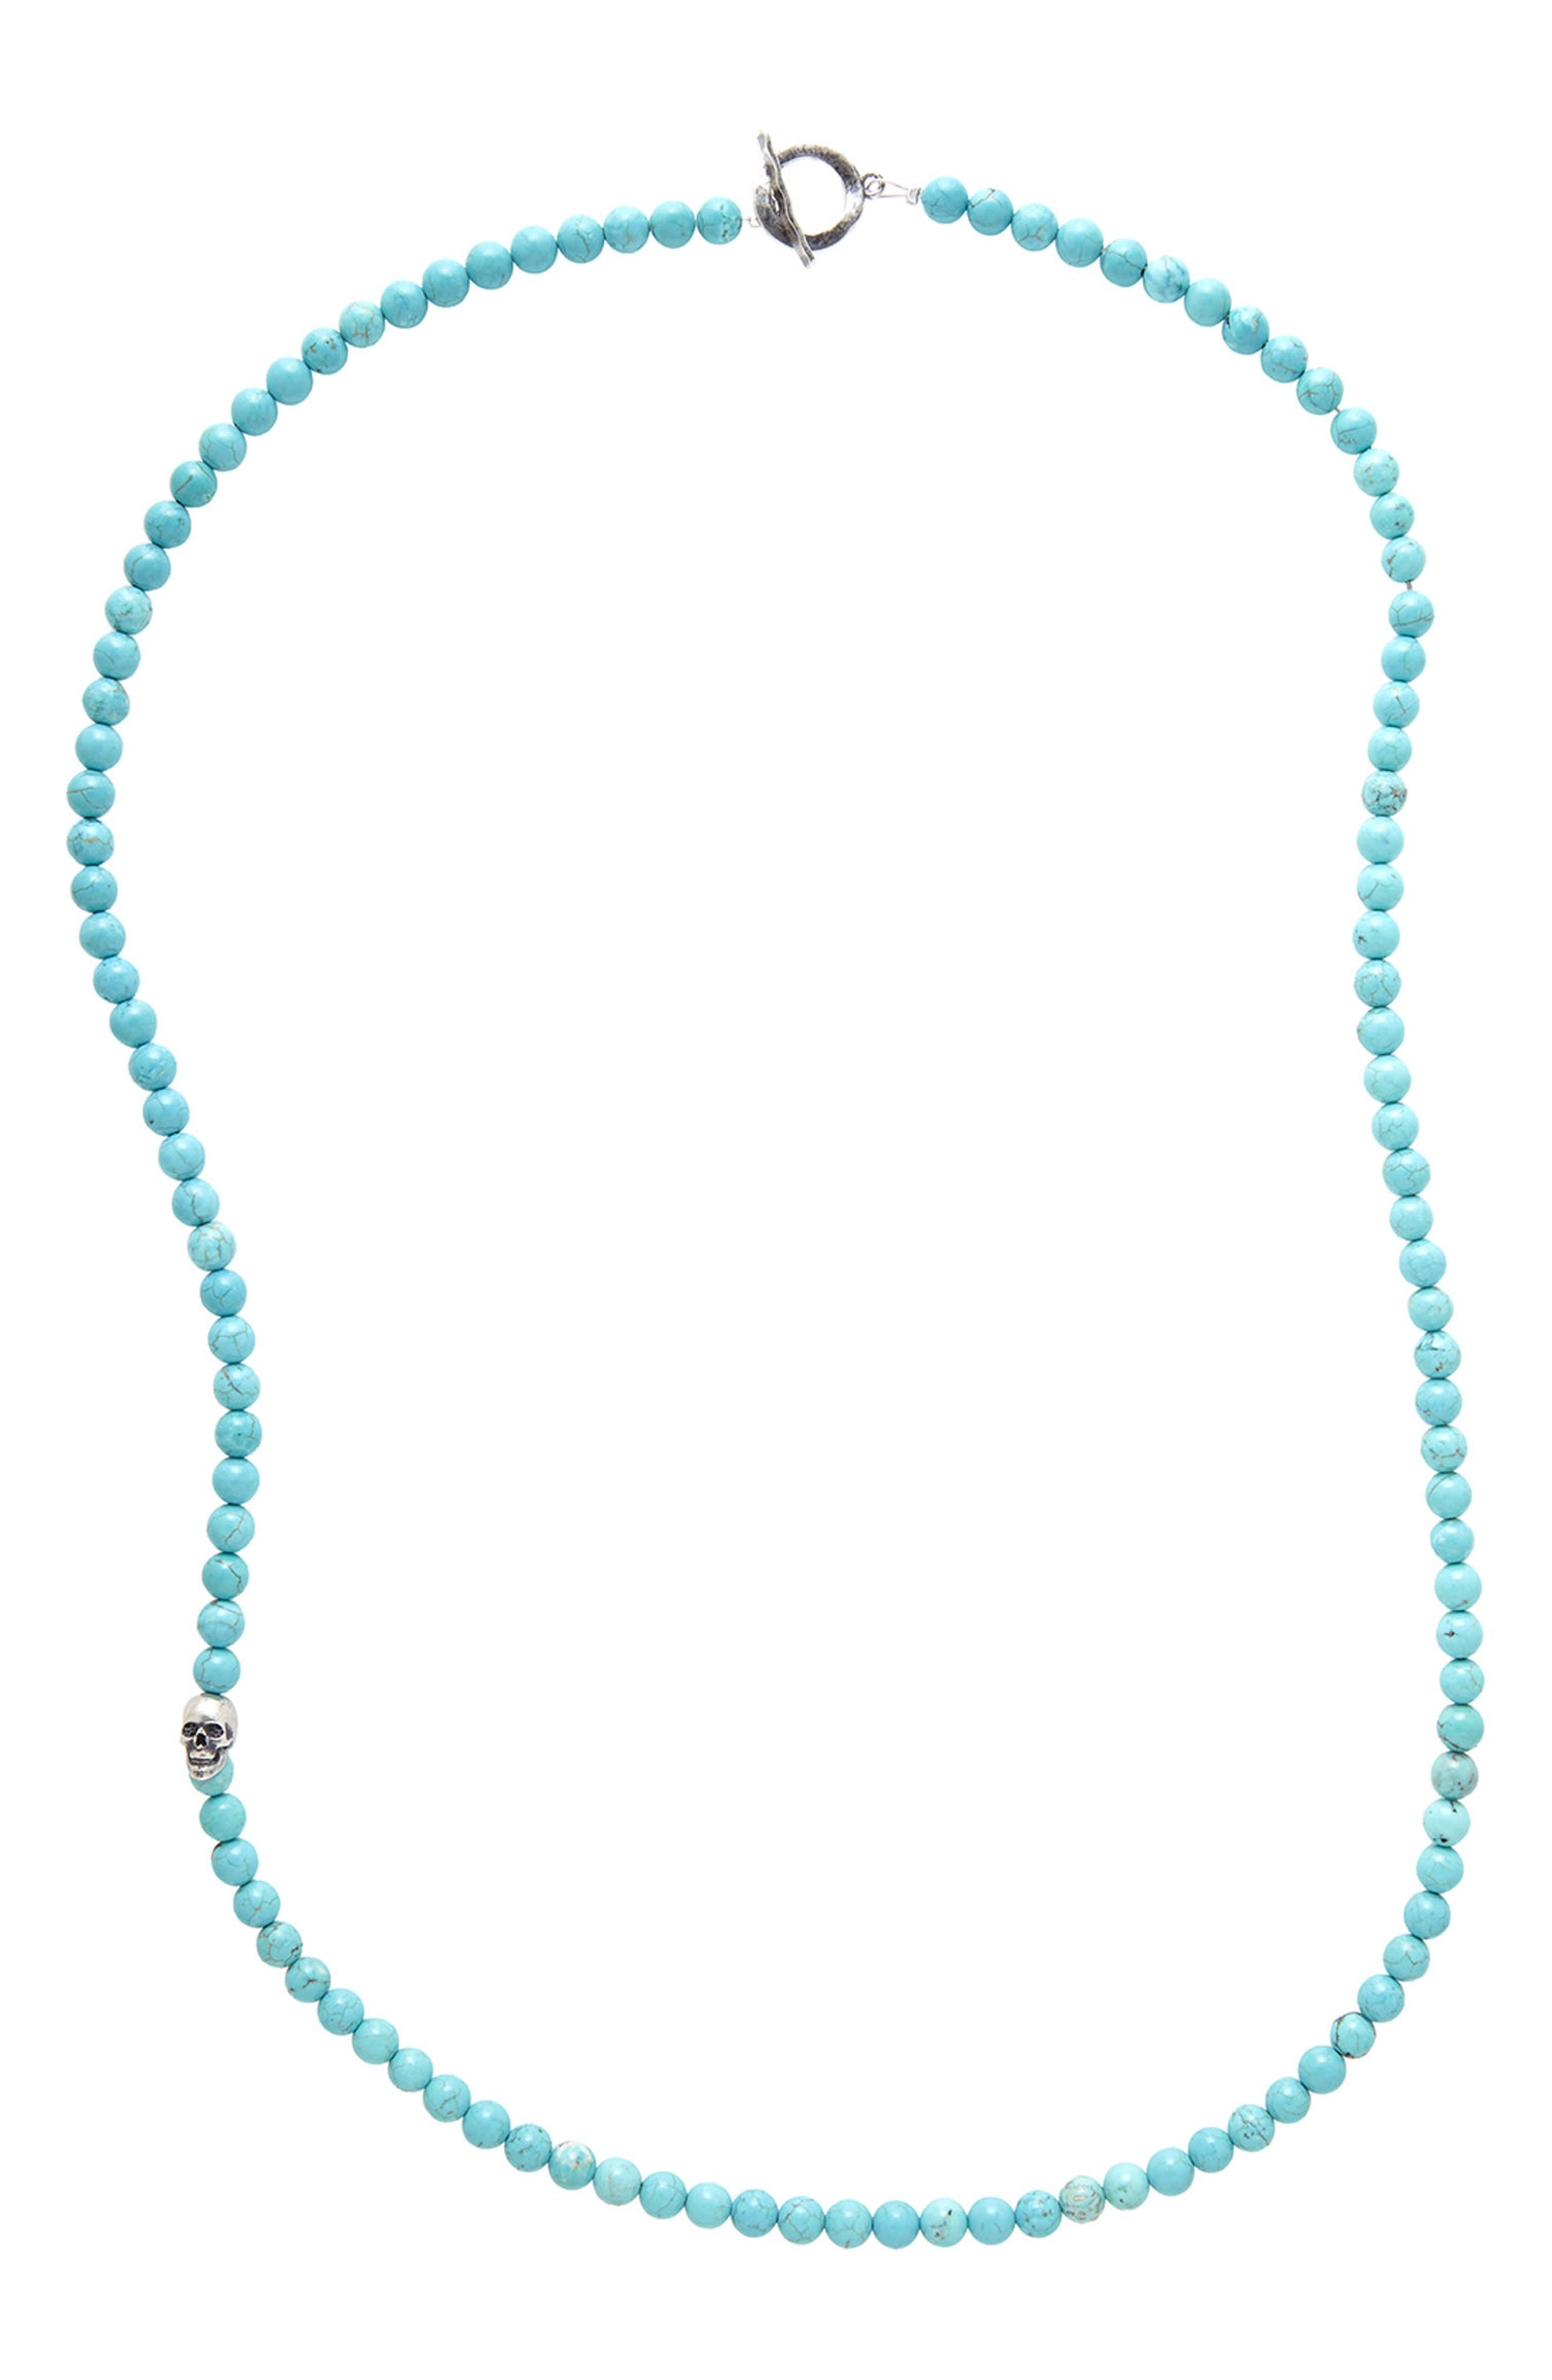 Turquoise Bead Necklace,                         Main,                         color, Turquoise